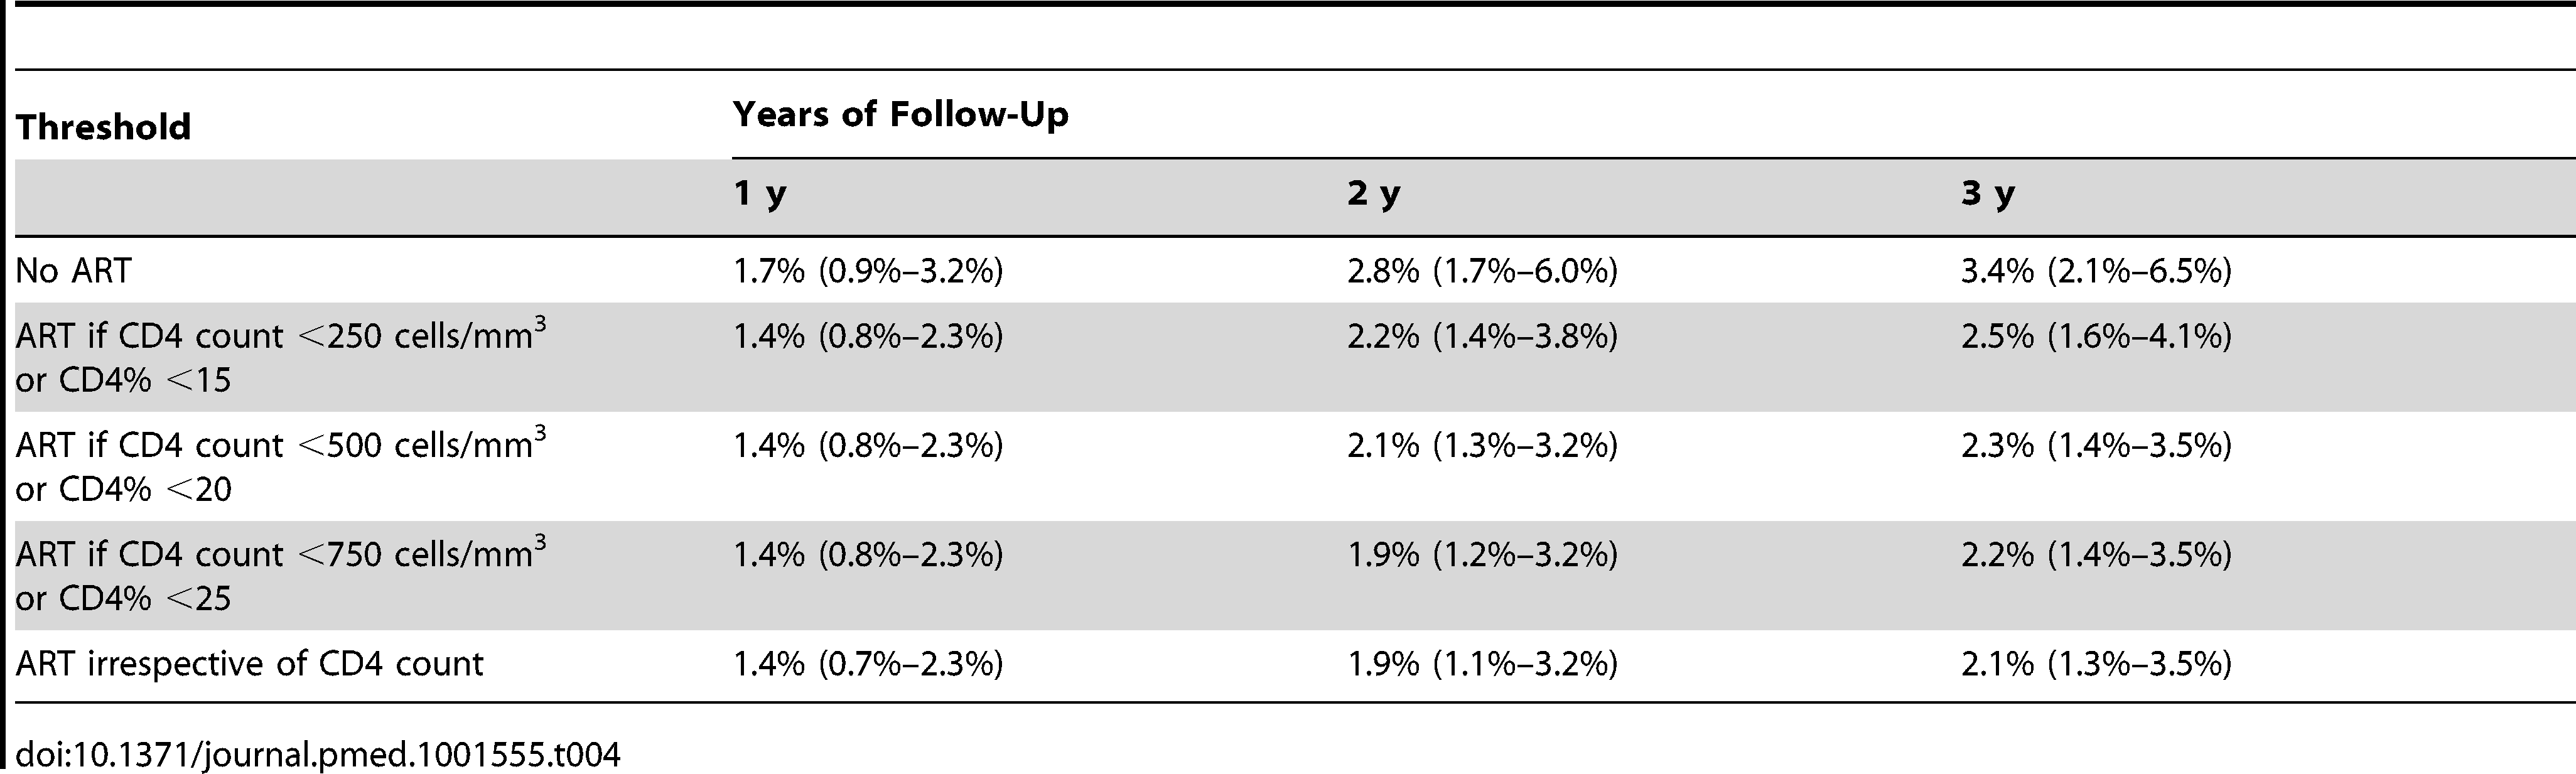 Estimated mortality (and 95% bootstrap confidence intervals) after 1, 2, and 3 y of follow-up for different initiation strategies.